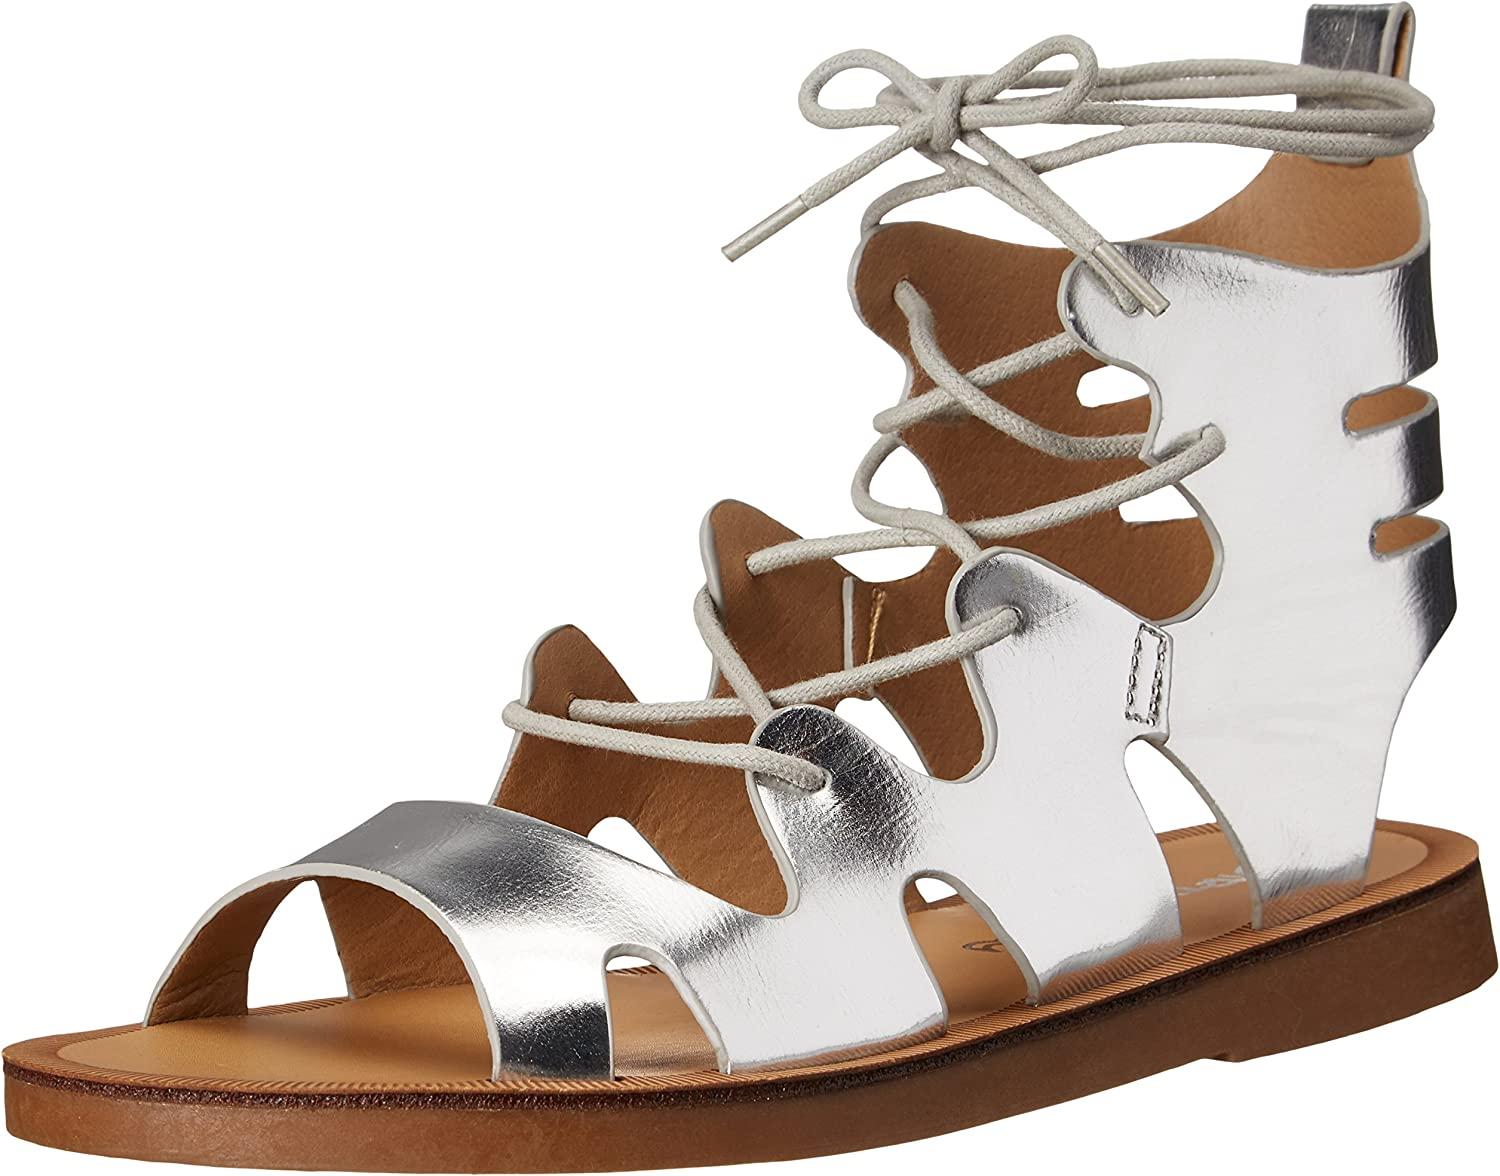 Dirty Laundry by Chinese Laundry Women's Bevelled Sandal